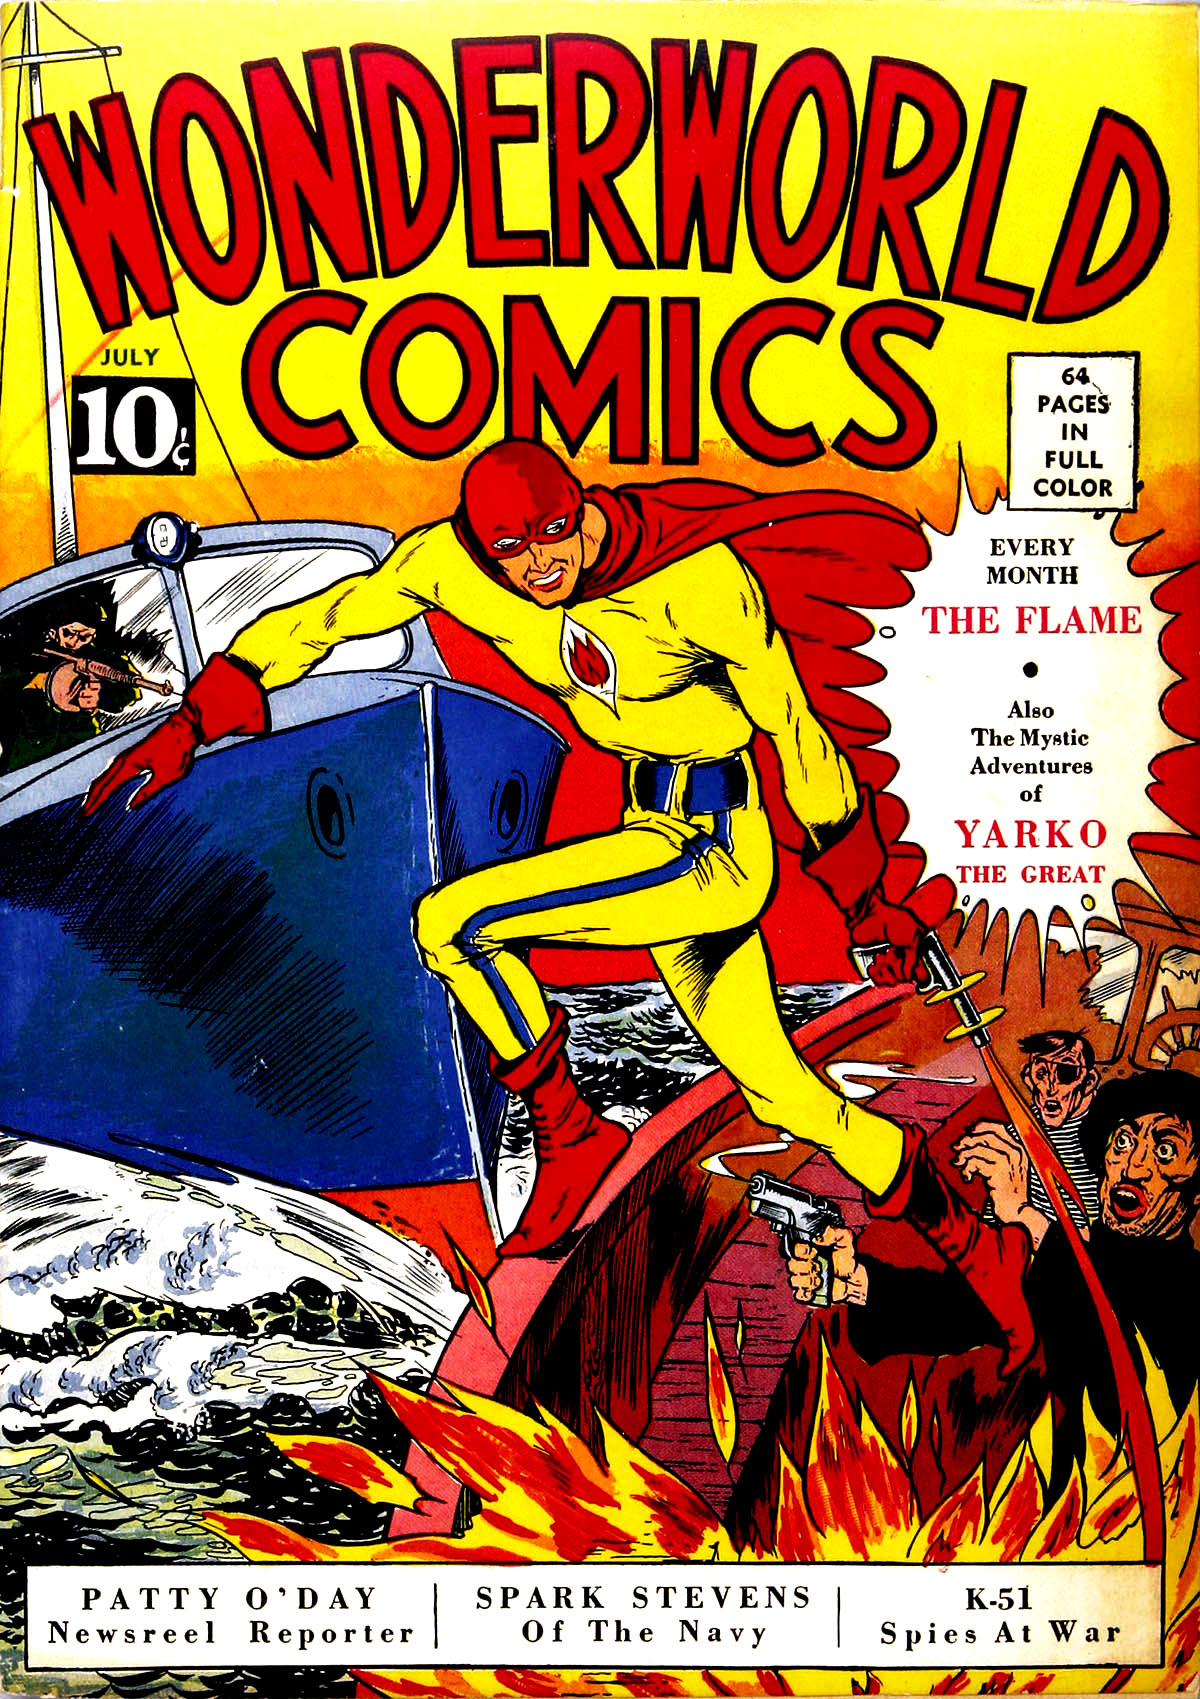 File:WonderworldComics3.jpg - Wikimedia Commons